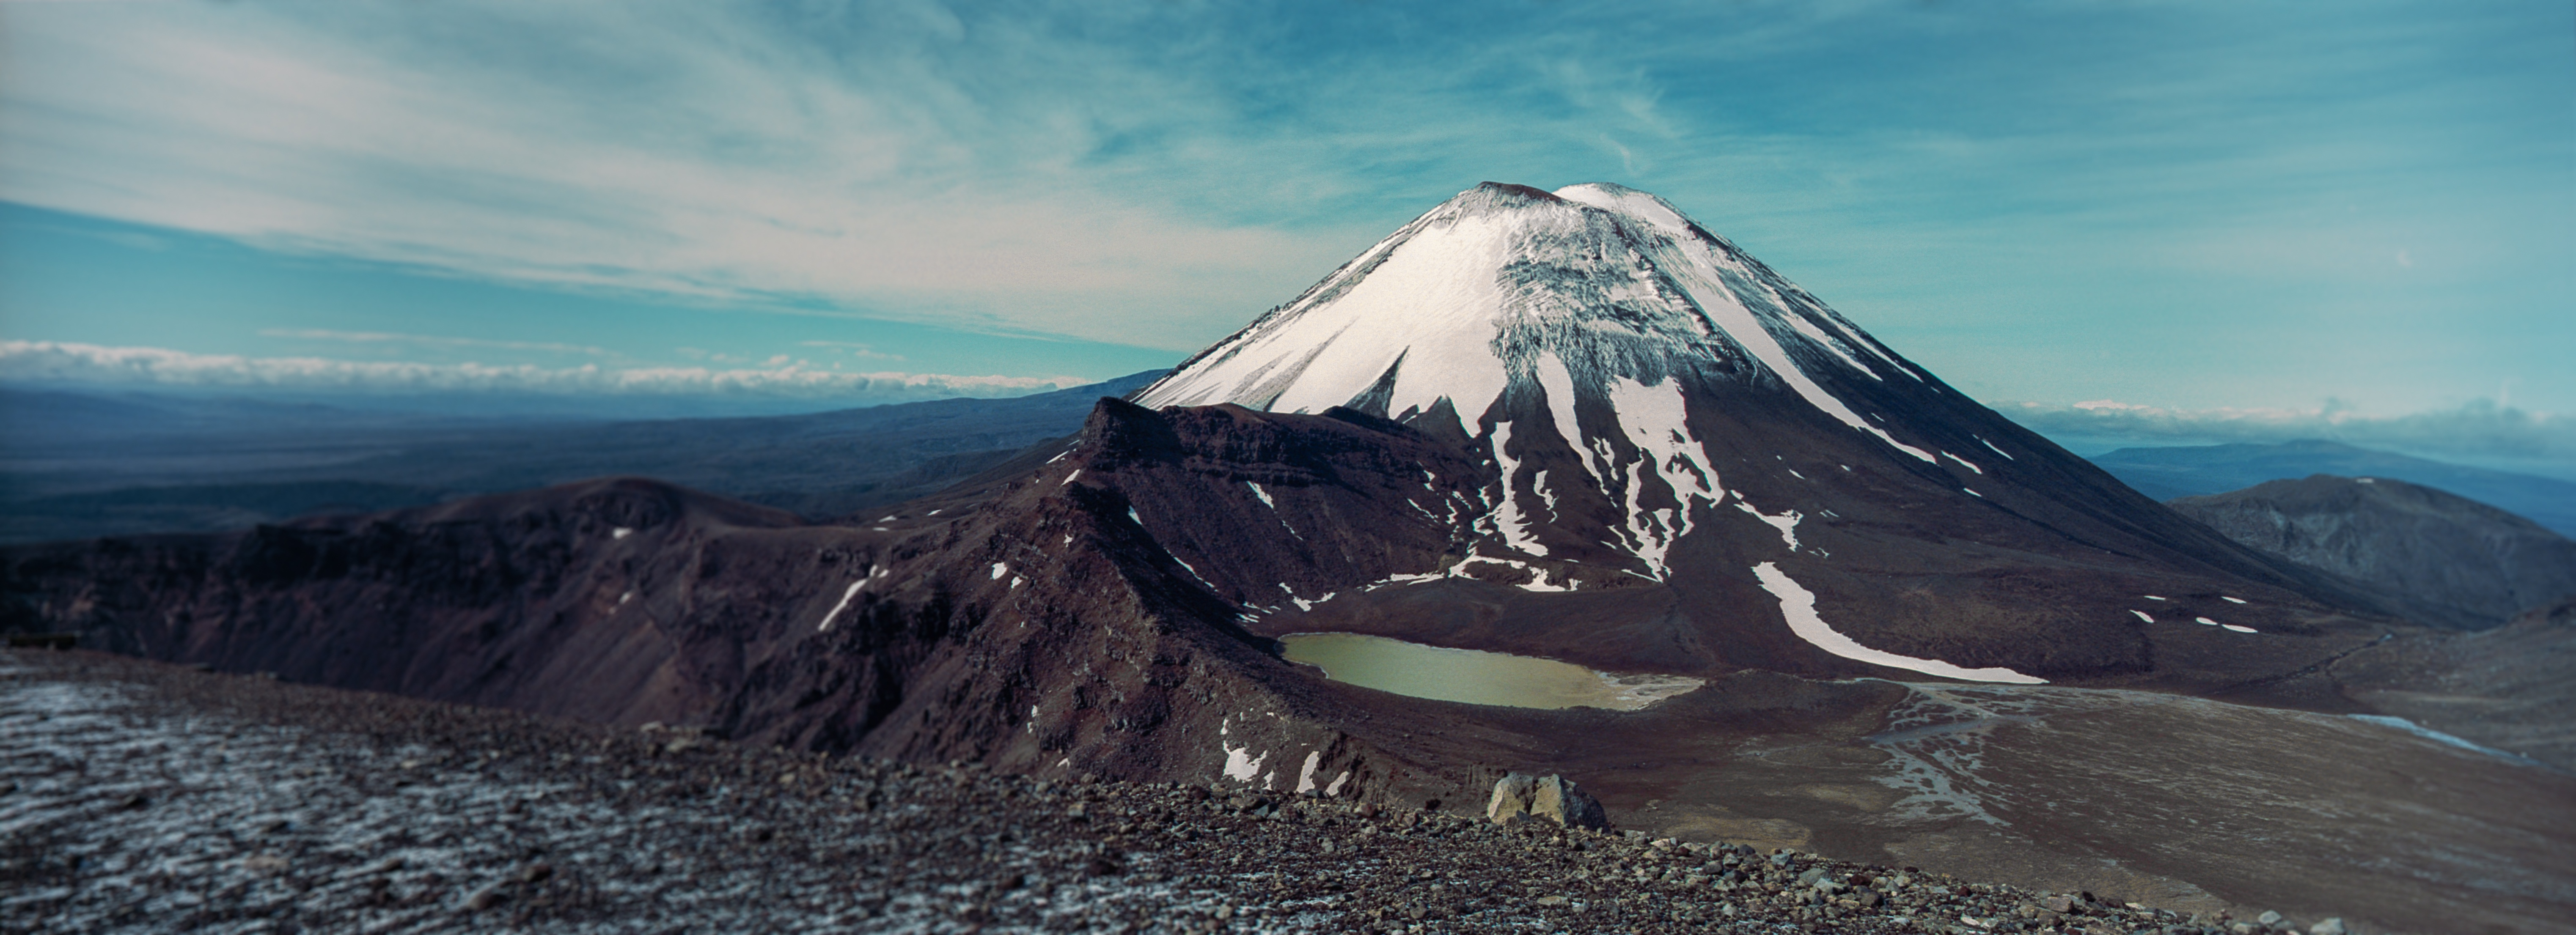 South Crater / Mt Ngauruhoe, Tongariro National Park, Ruapehu District, North Island